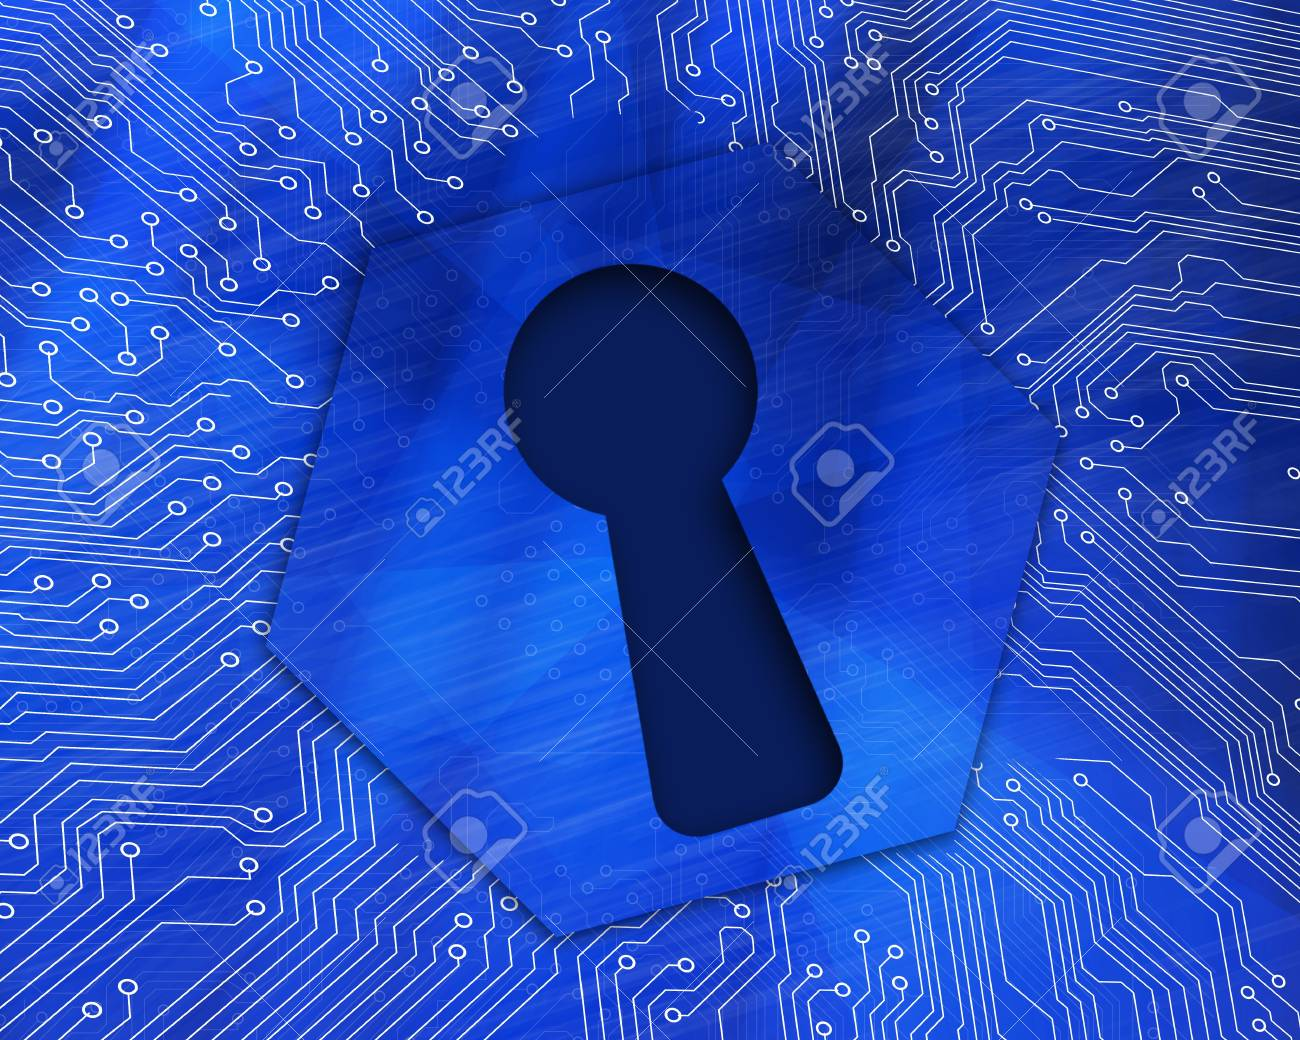 Keyhole graphic on blue computing background Stock Photo - 18118665